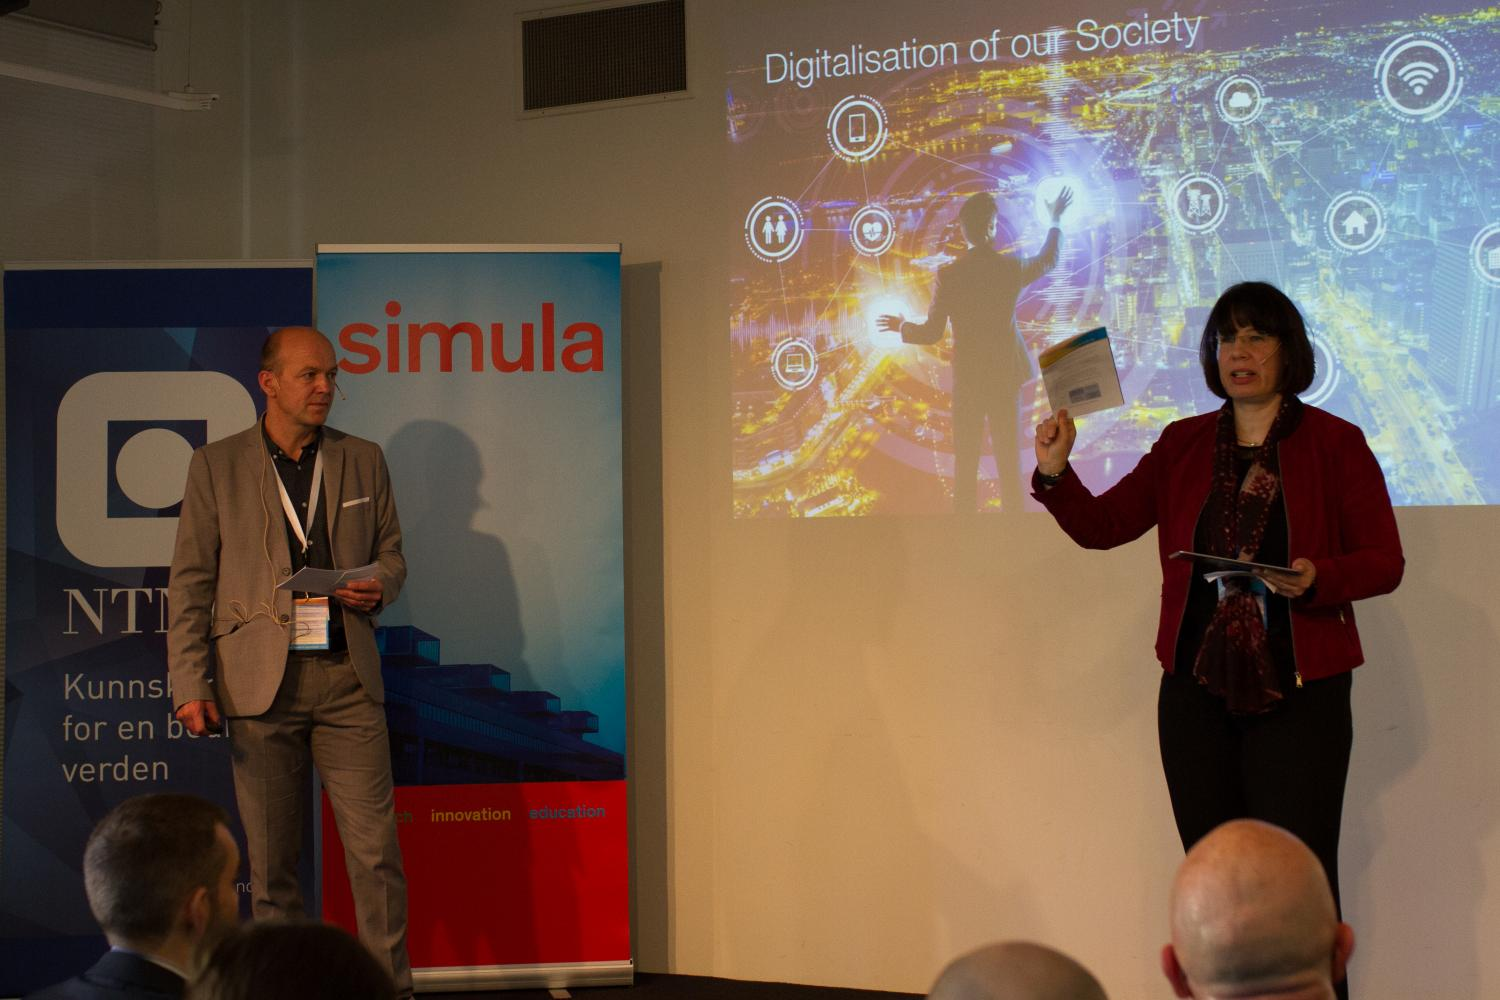 Dr. Kyrre Lekve (Simula) and Professor Katrin Franke (NTNU) at the opening of the 2017 Cyber Security Seminar. Photo: Simula